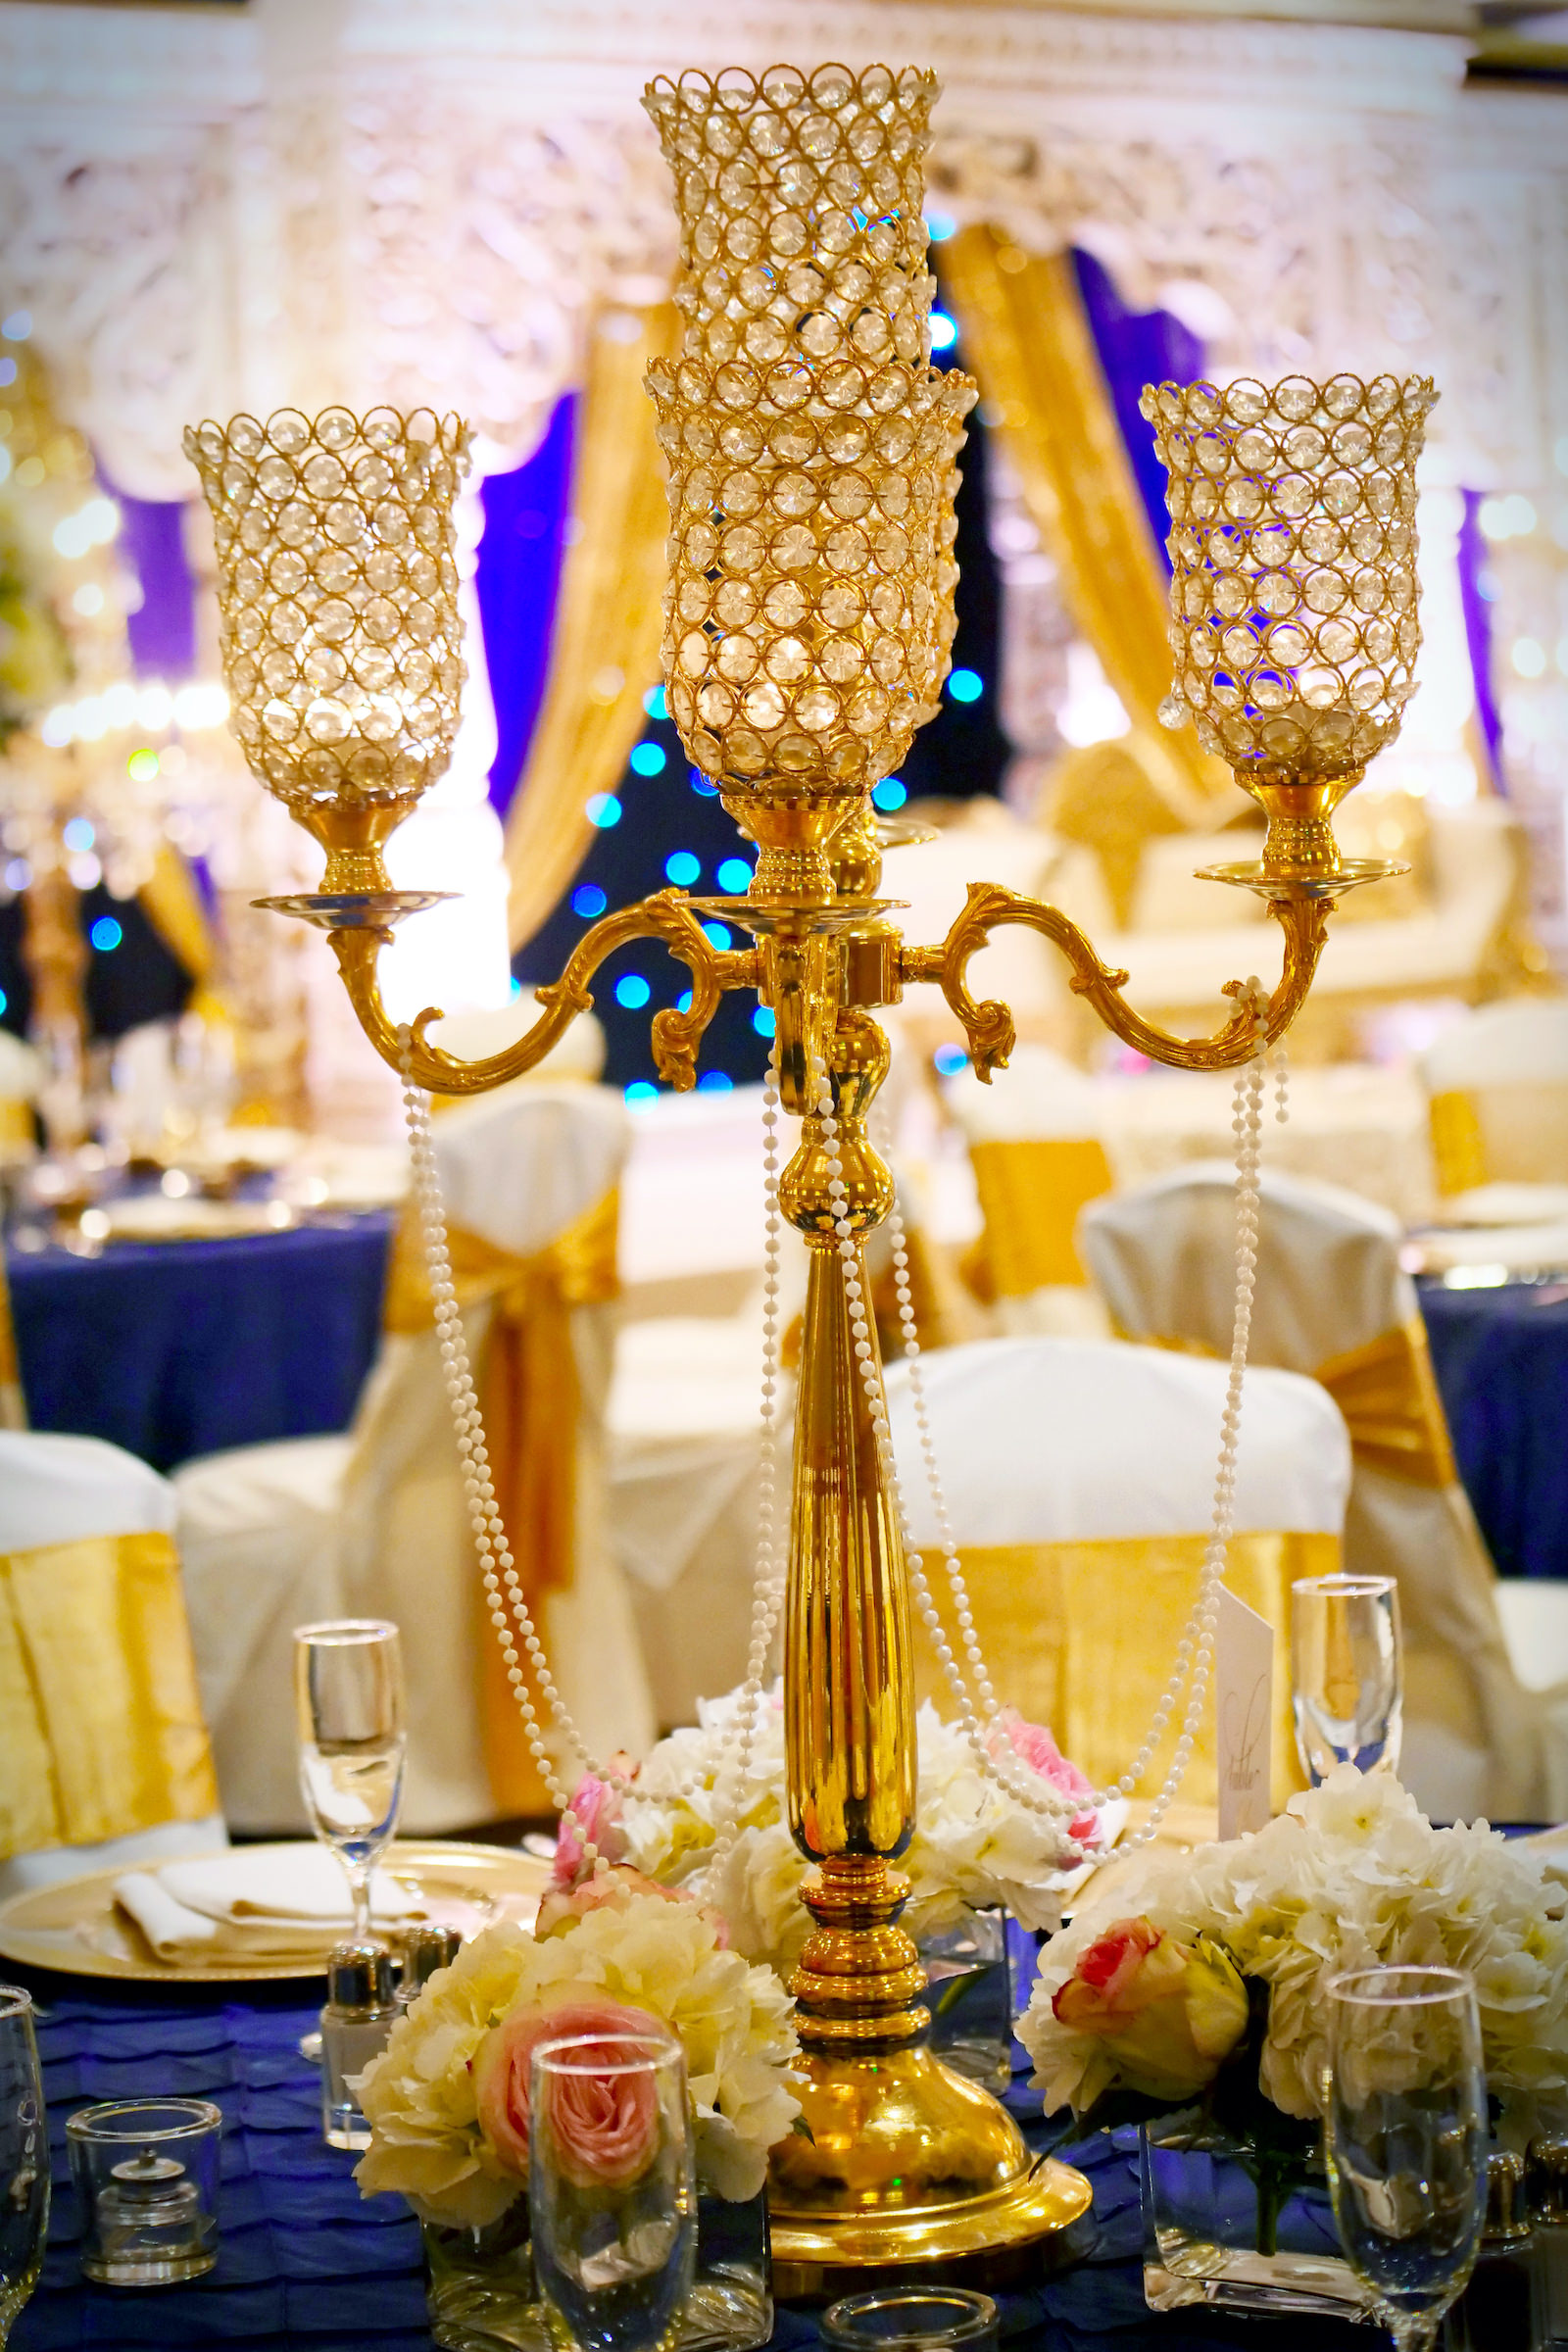 Tall Gold Candelabra Centerpiece with Pearls and Pink Roses and Ivory Hydrangea | Clearwater Indian Wedding Reception Inspiration